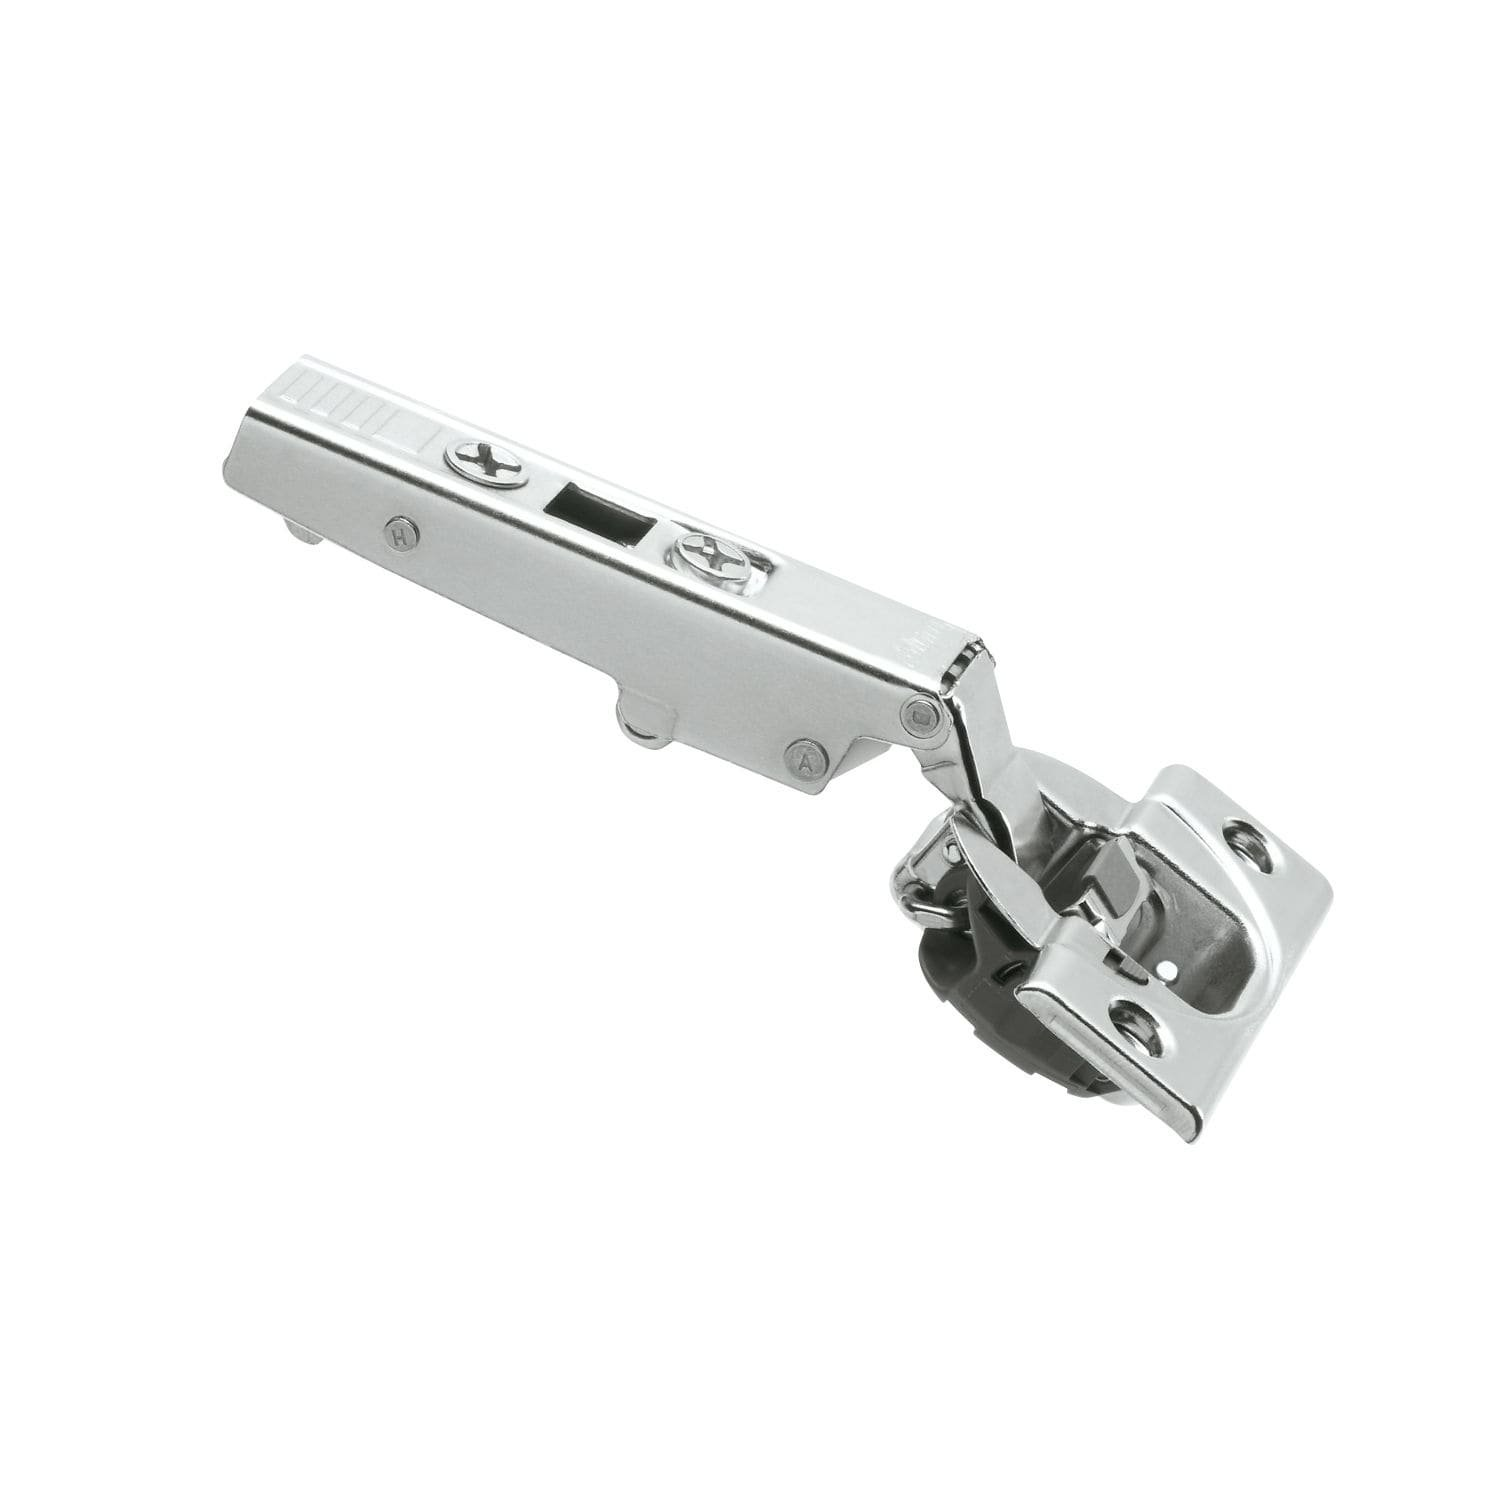 Blum Rok Hardware 50 Pack 110 Degree Straight Arm Clip Top otion Overlay Screw-On Self Closing Soft Close Cabinet Hinge